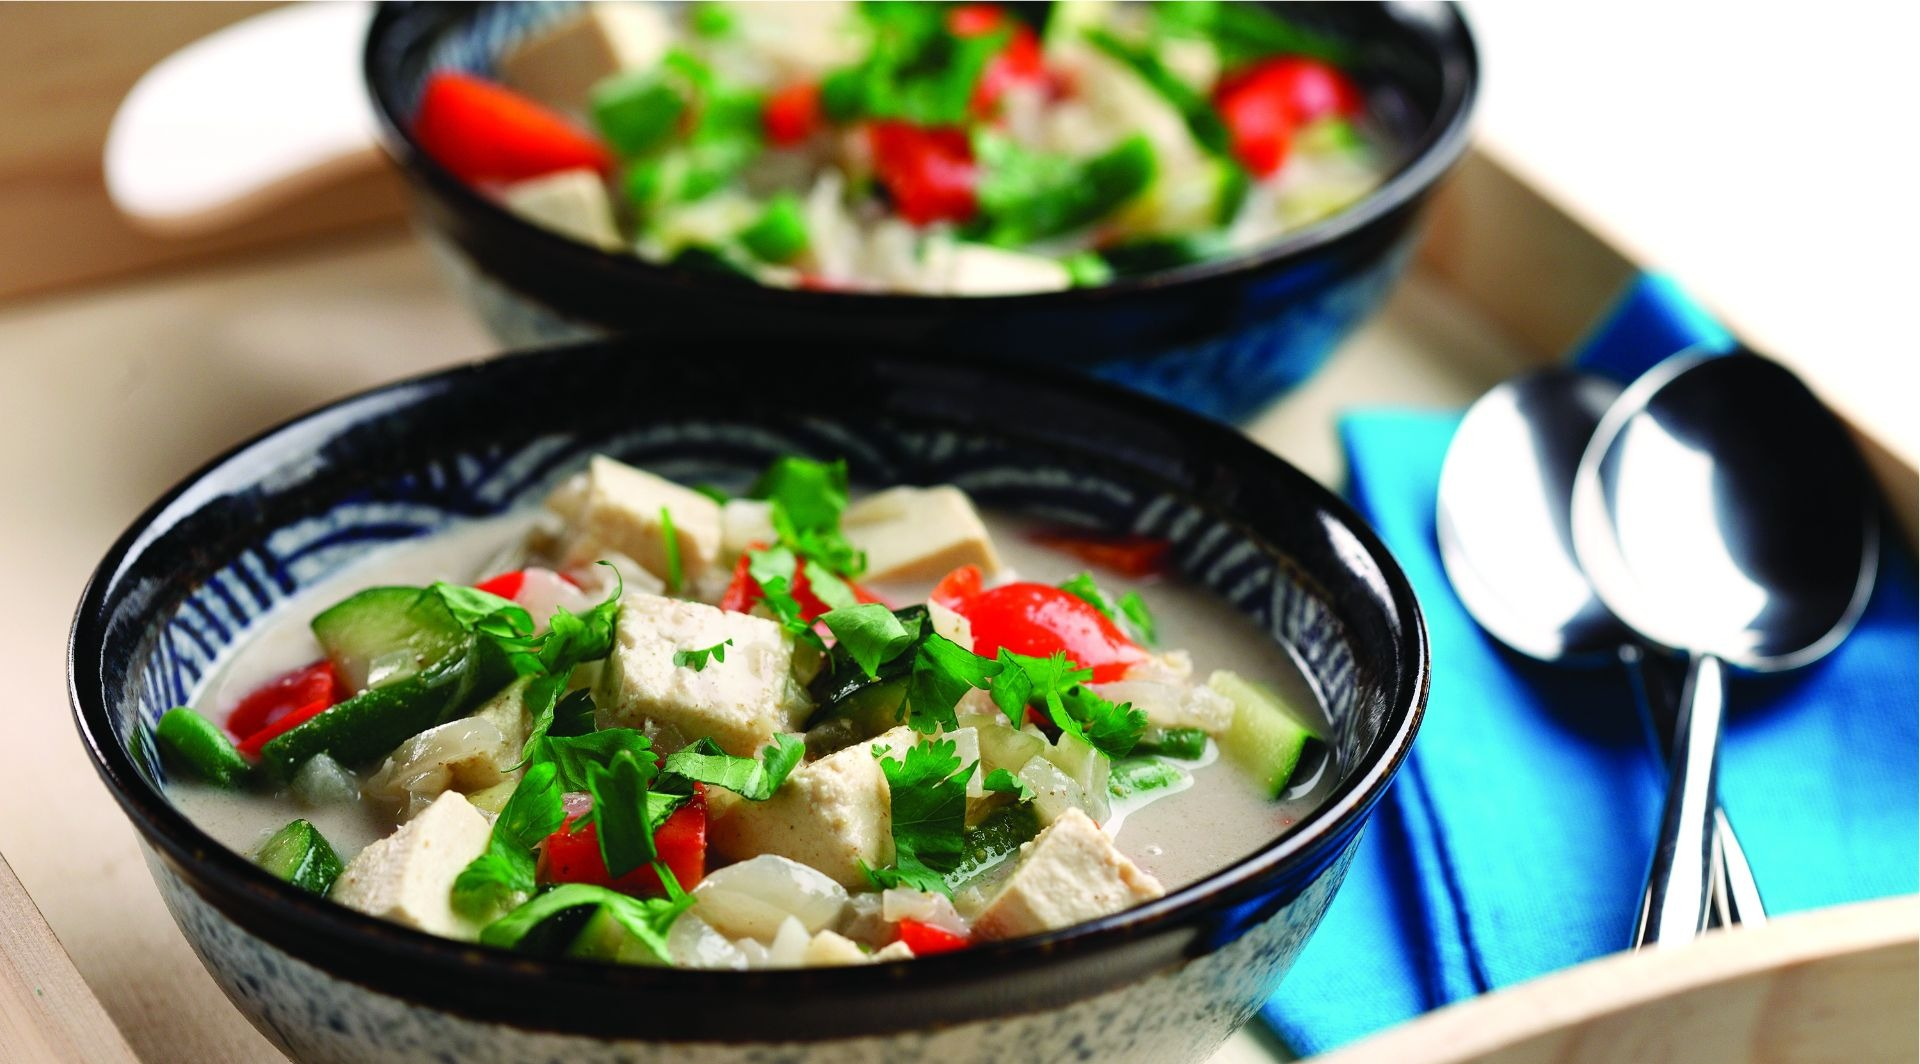 Bowls of tofu cubes, cilantro, red pepper, zucchini and broth